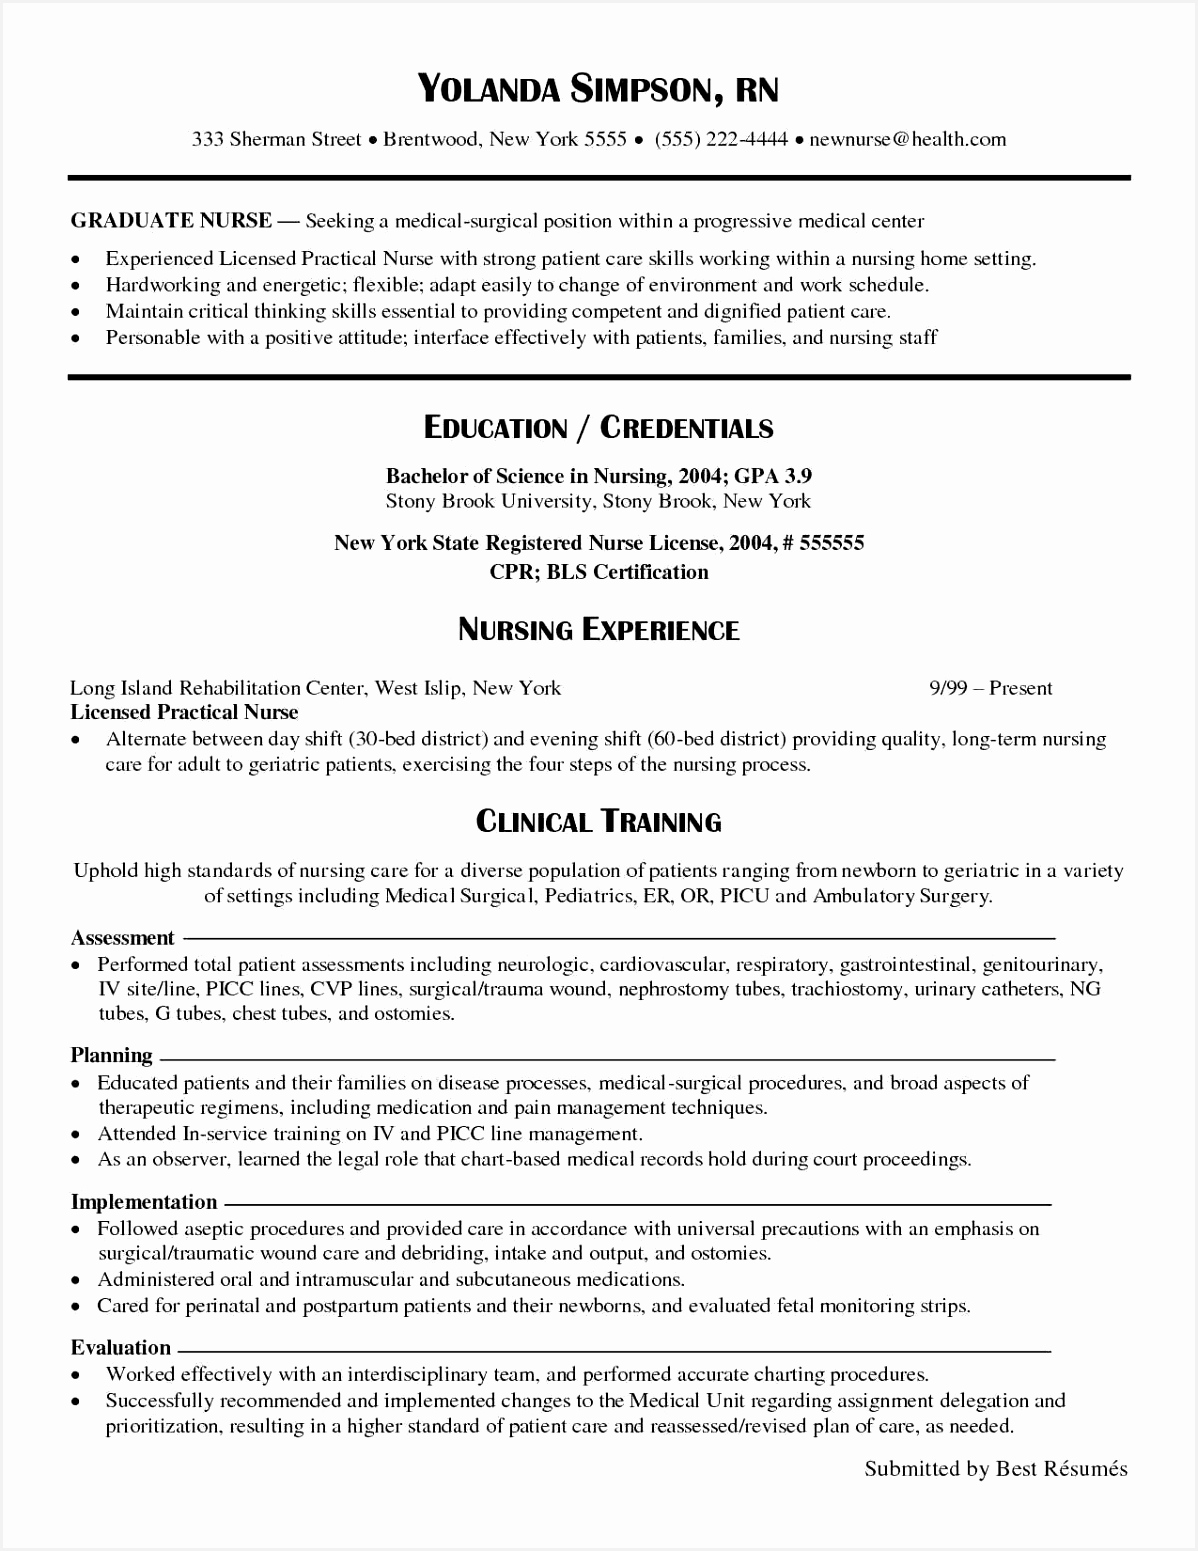 Examples Of Registered Nurse Resume Eavom Fresh Nurse Resume Sample Lovely Elegant New Nurse Resume Awesome Nurse Of 9 Examples Of Registered Nurse Resume